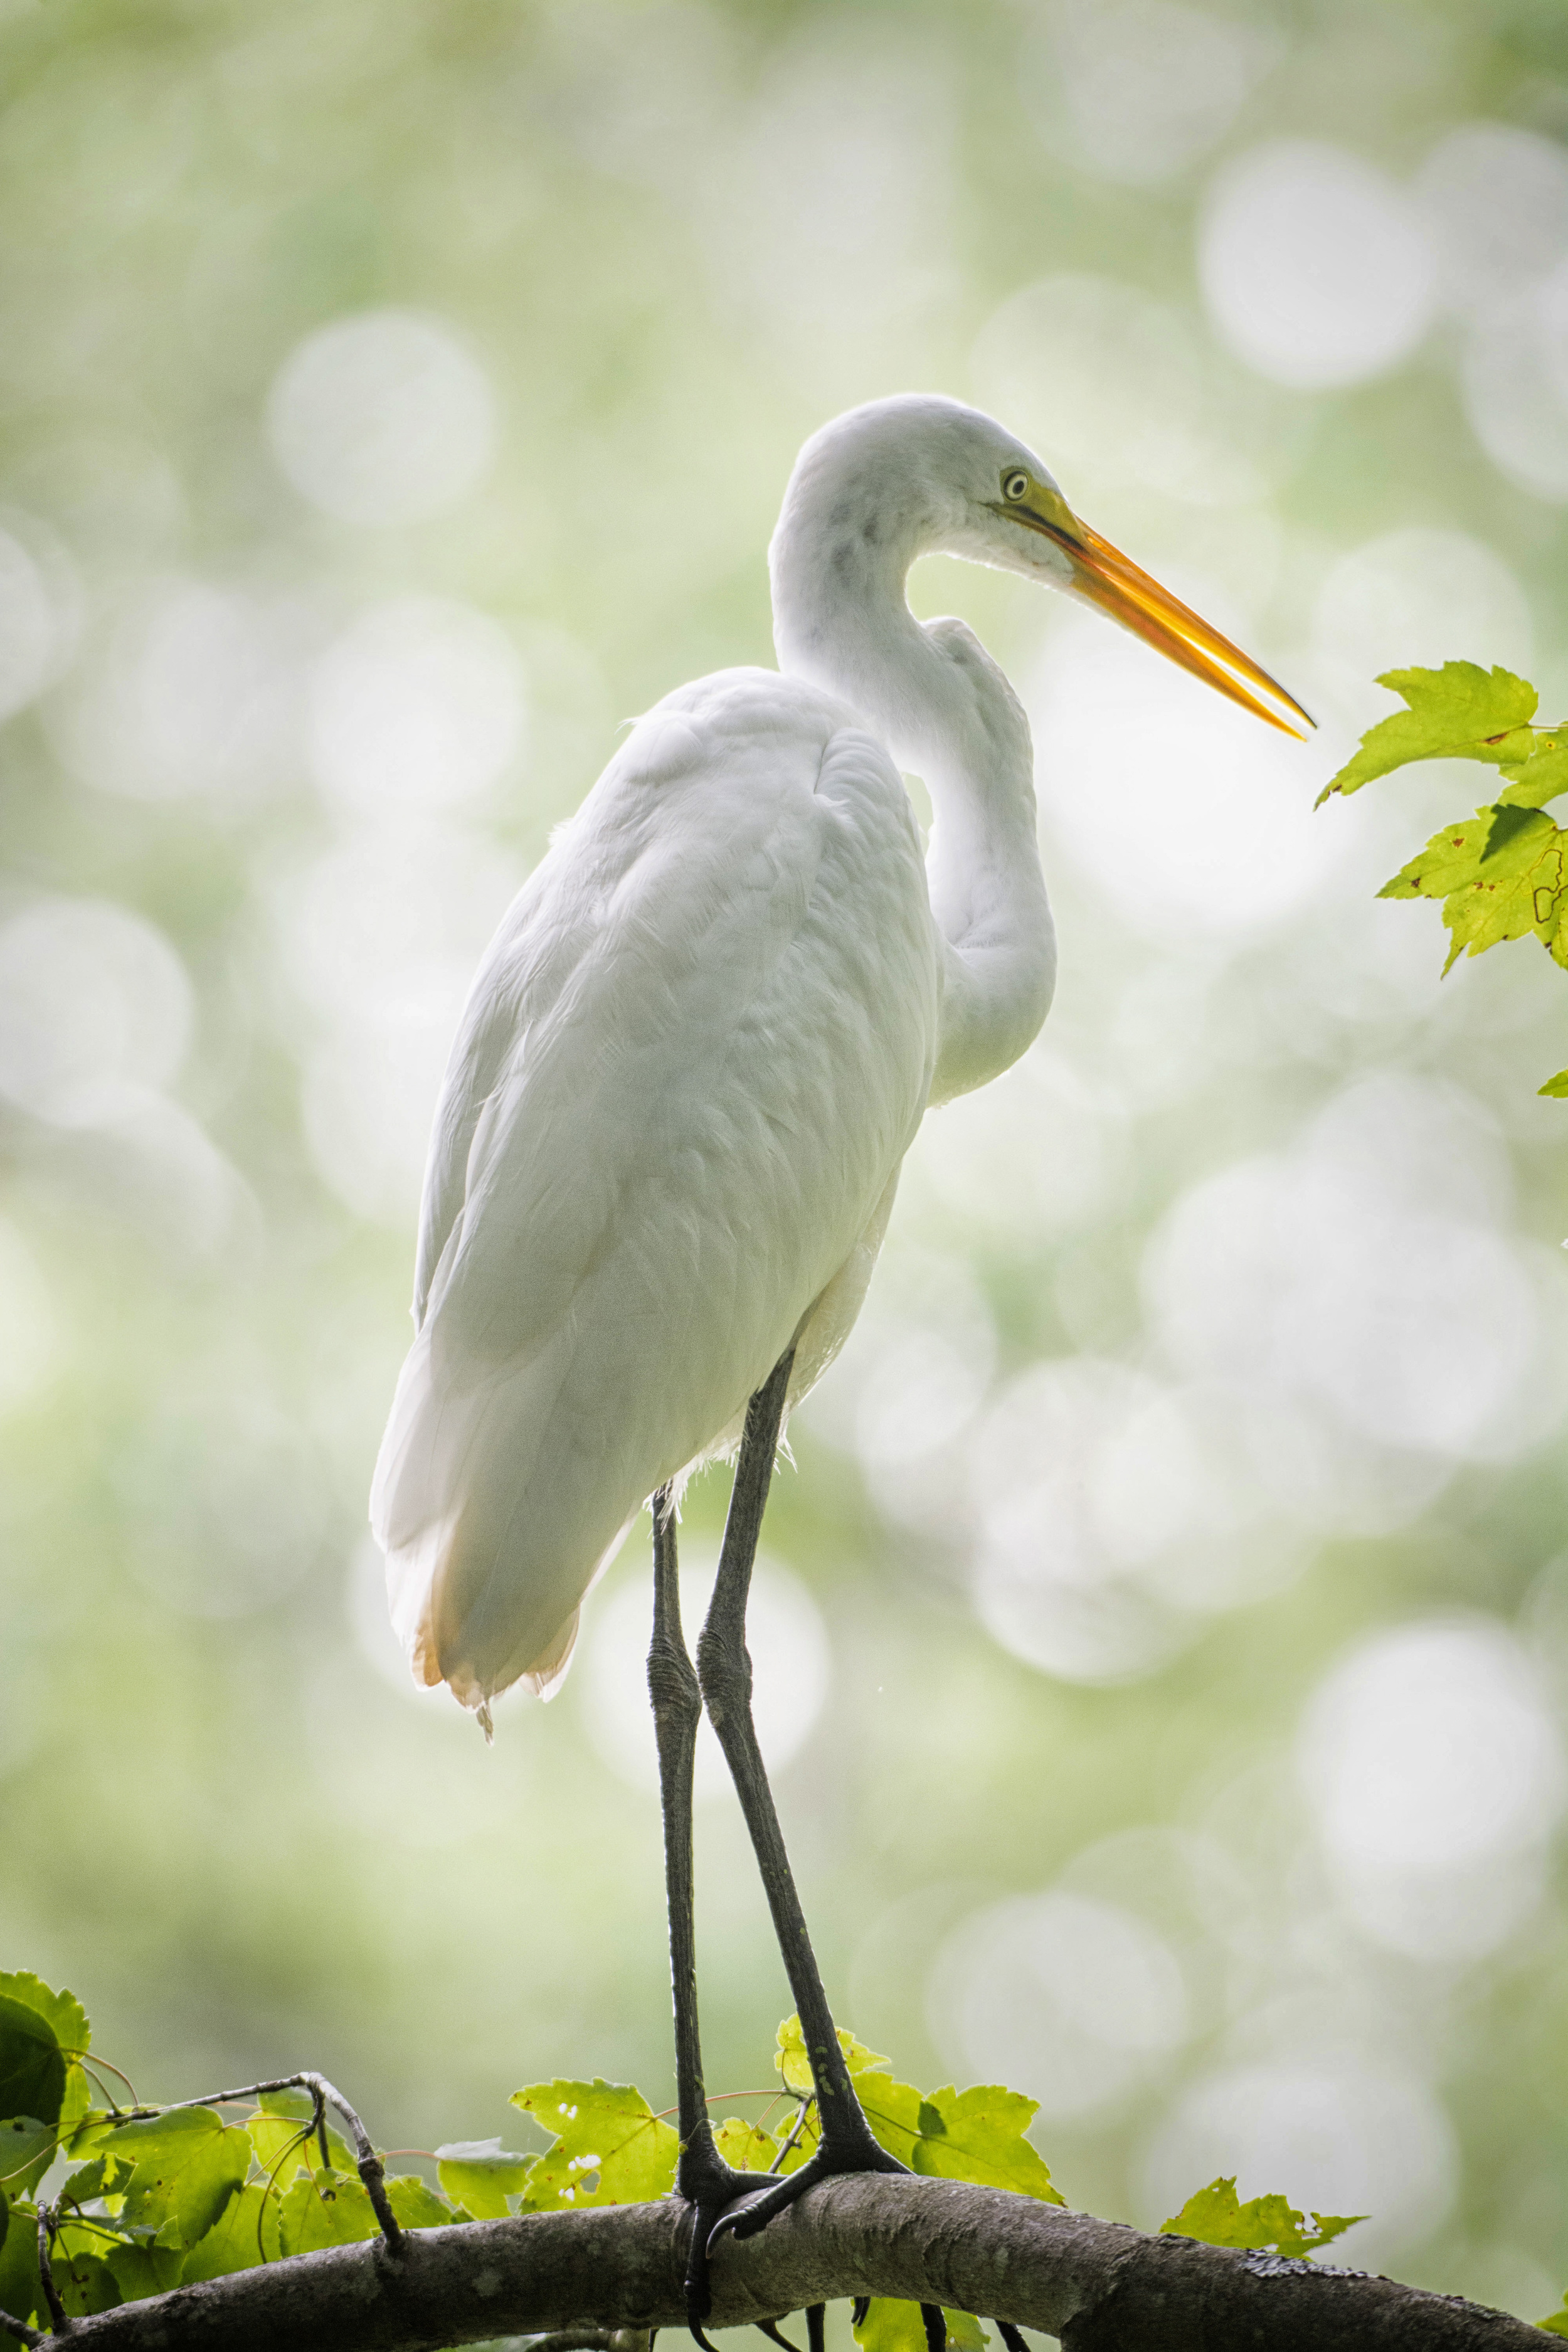 Great White Egret at Bombay Hook NWR